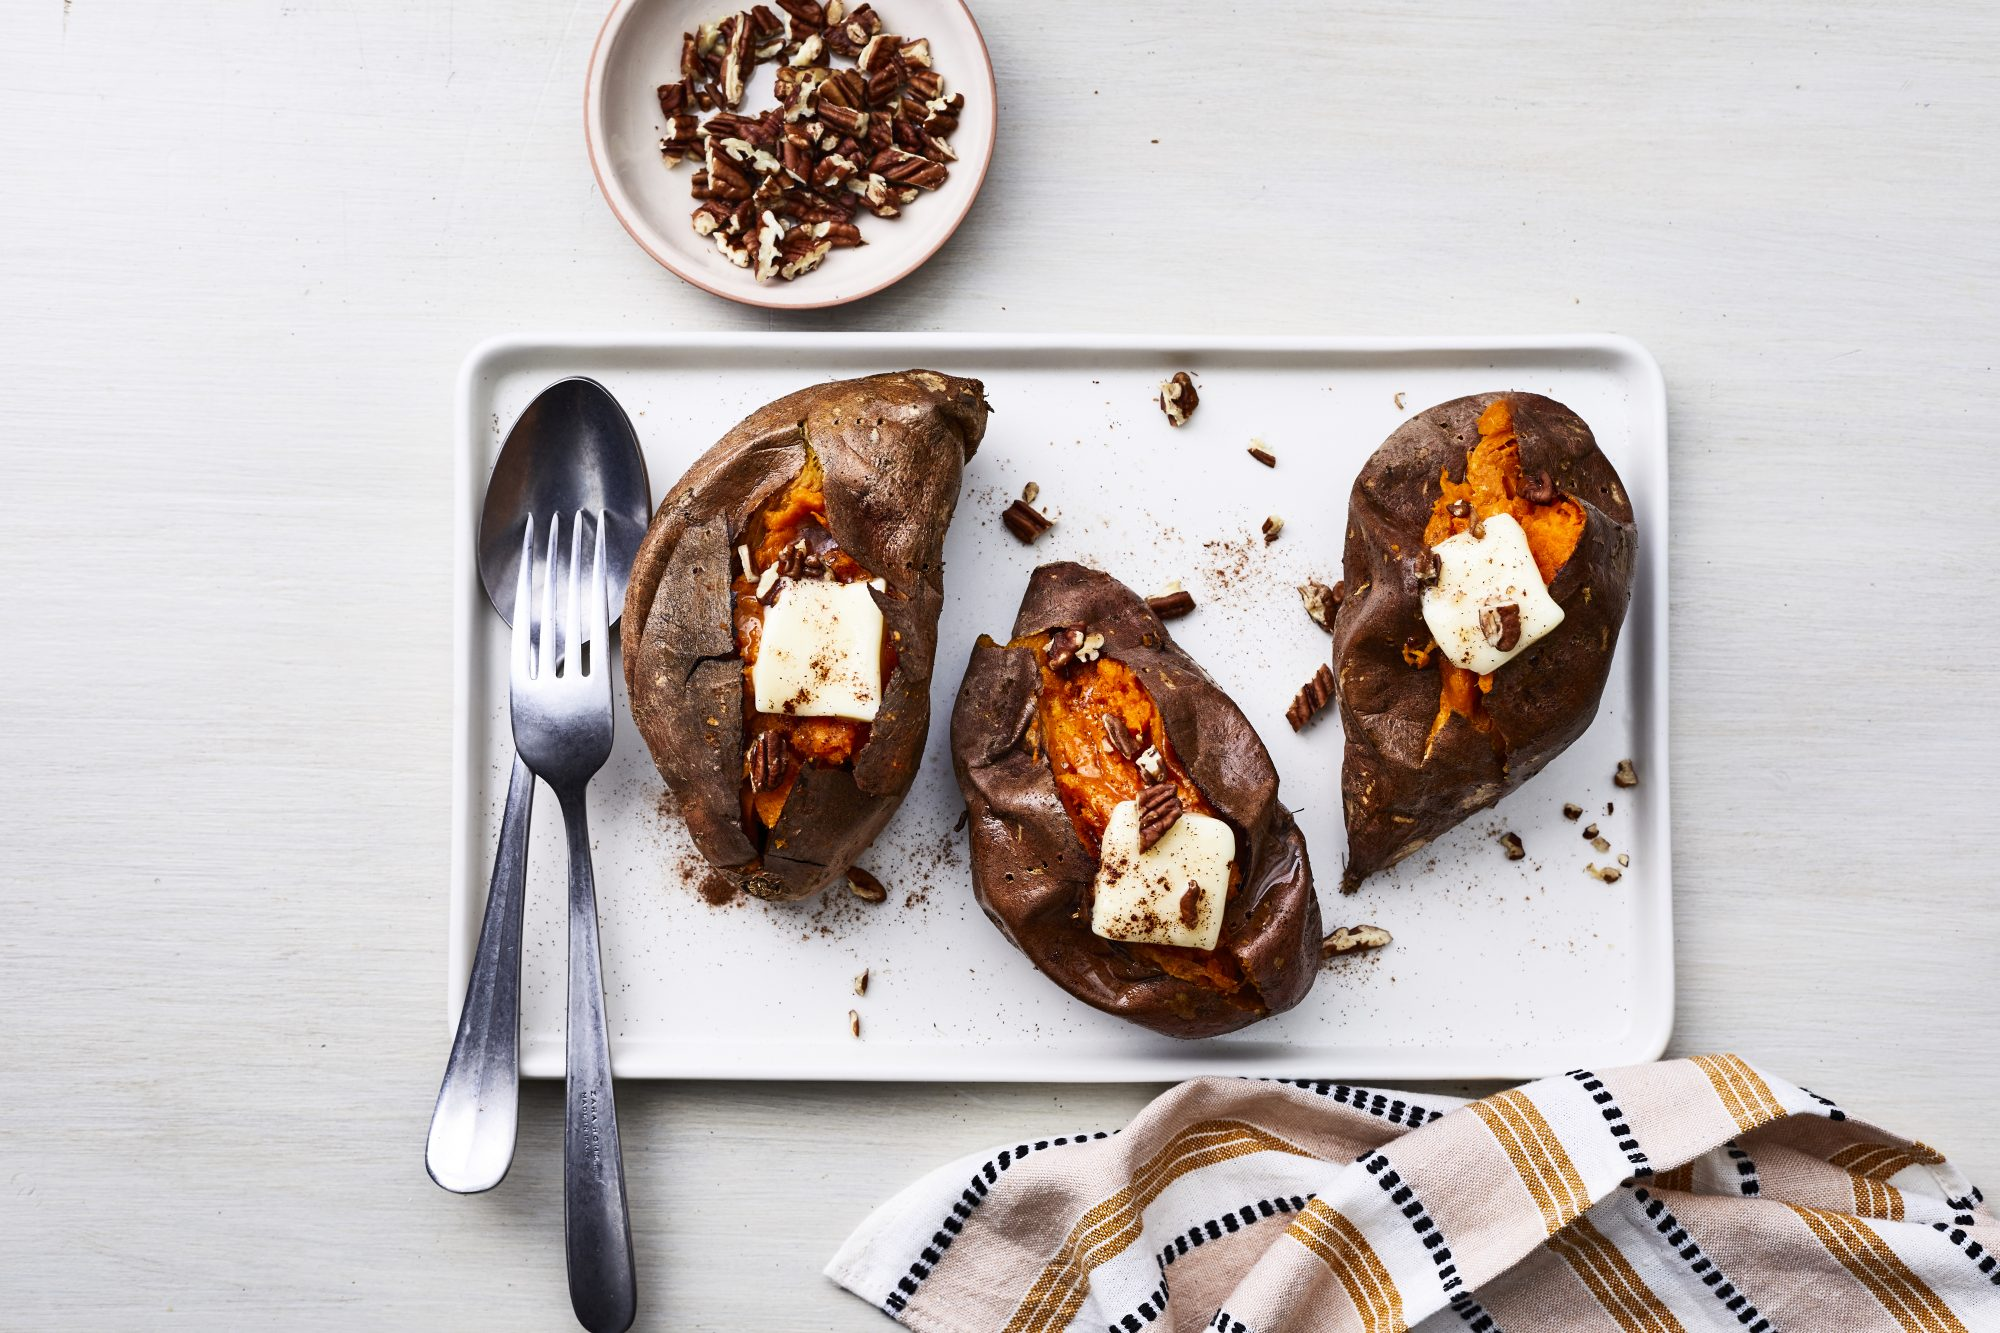 mr- baked sweet potatoes